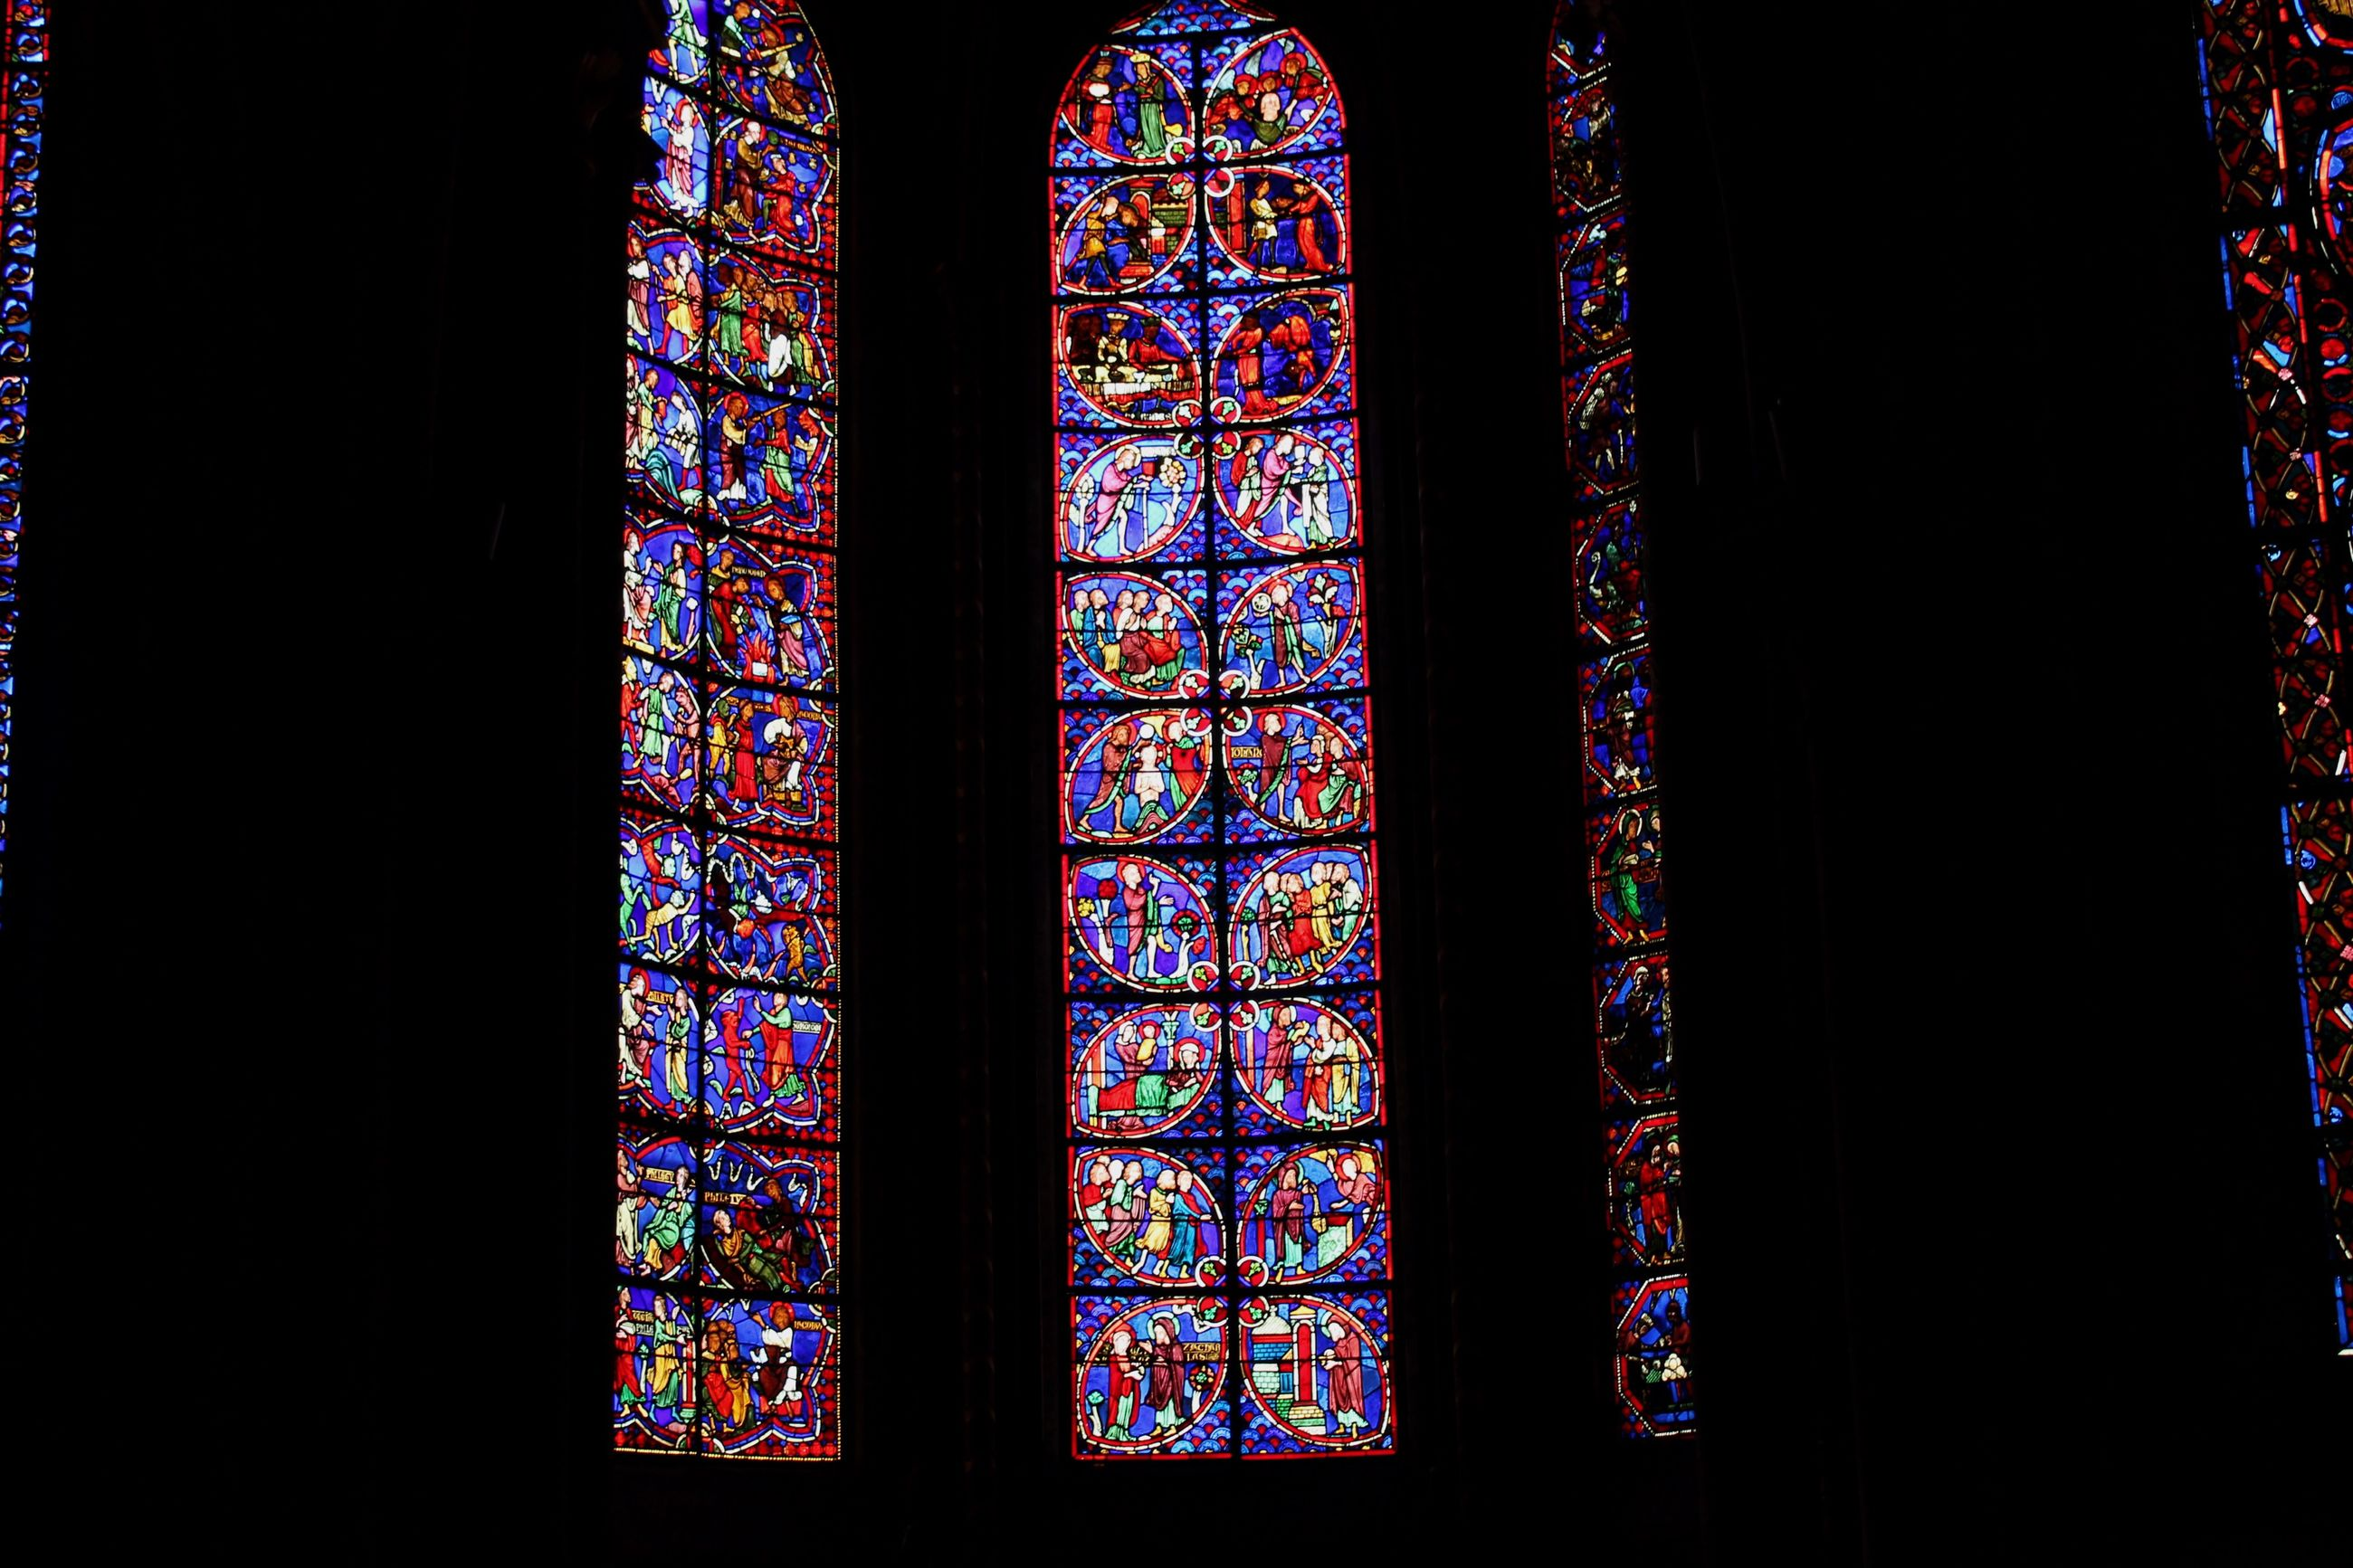 window, stained glass, indoors, multi colored, design, dark, church, darkroom, place of worship, colorful, art product, interiors, geometric shape, architecture and art